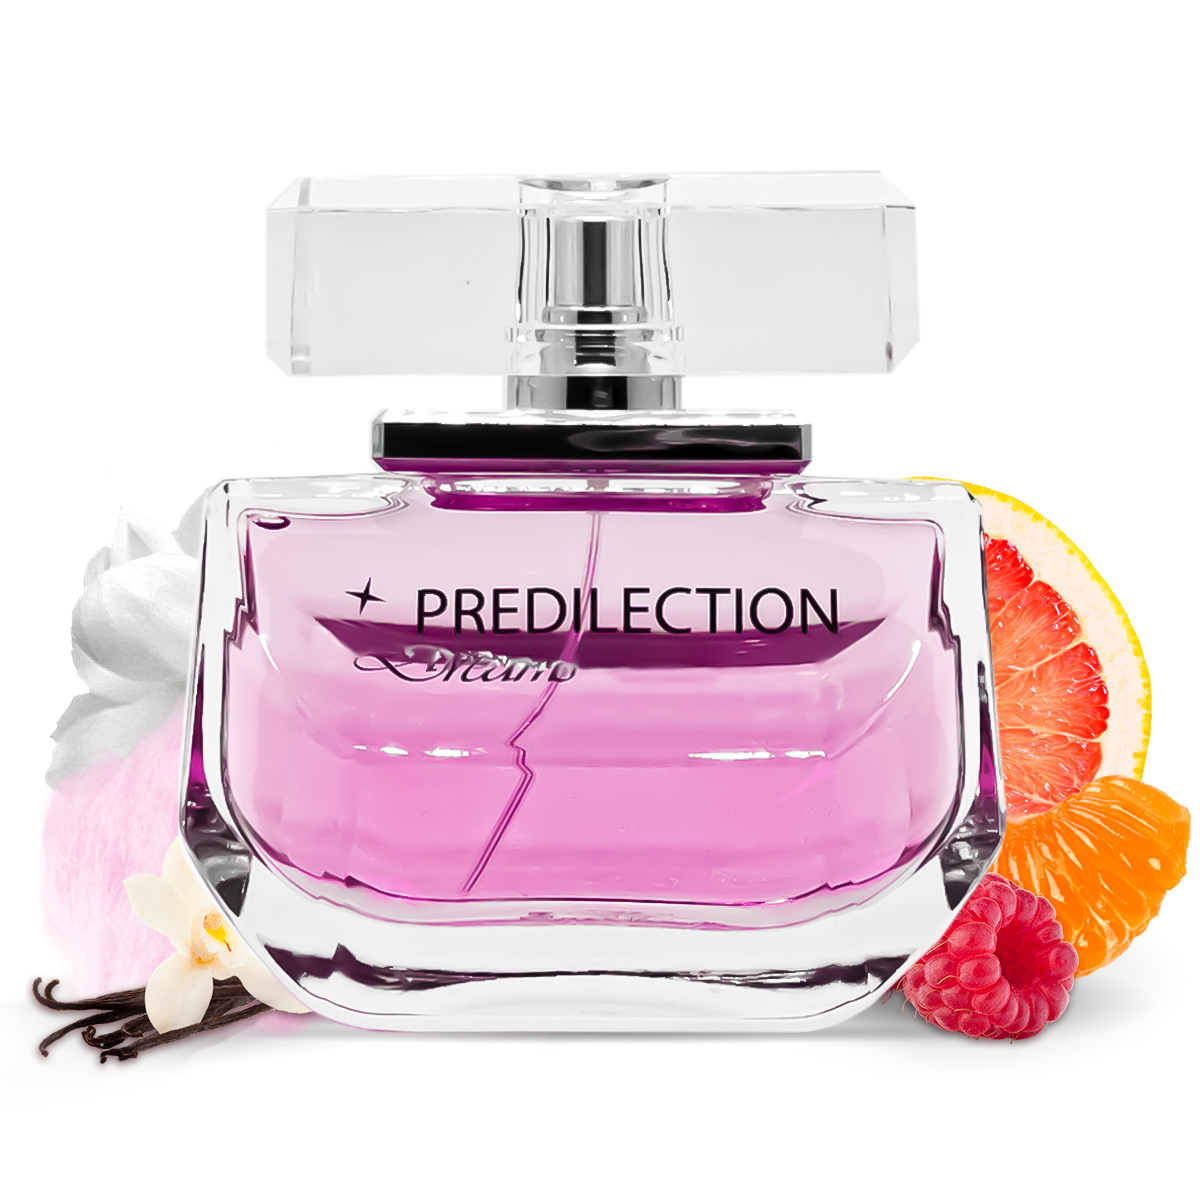 Perfume Predilection Dreams Feminino Edp 100ml Paris Bleu